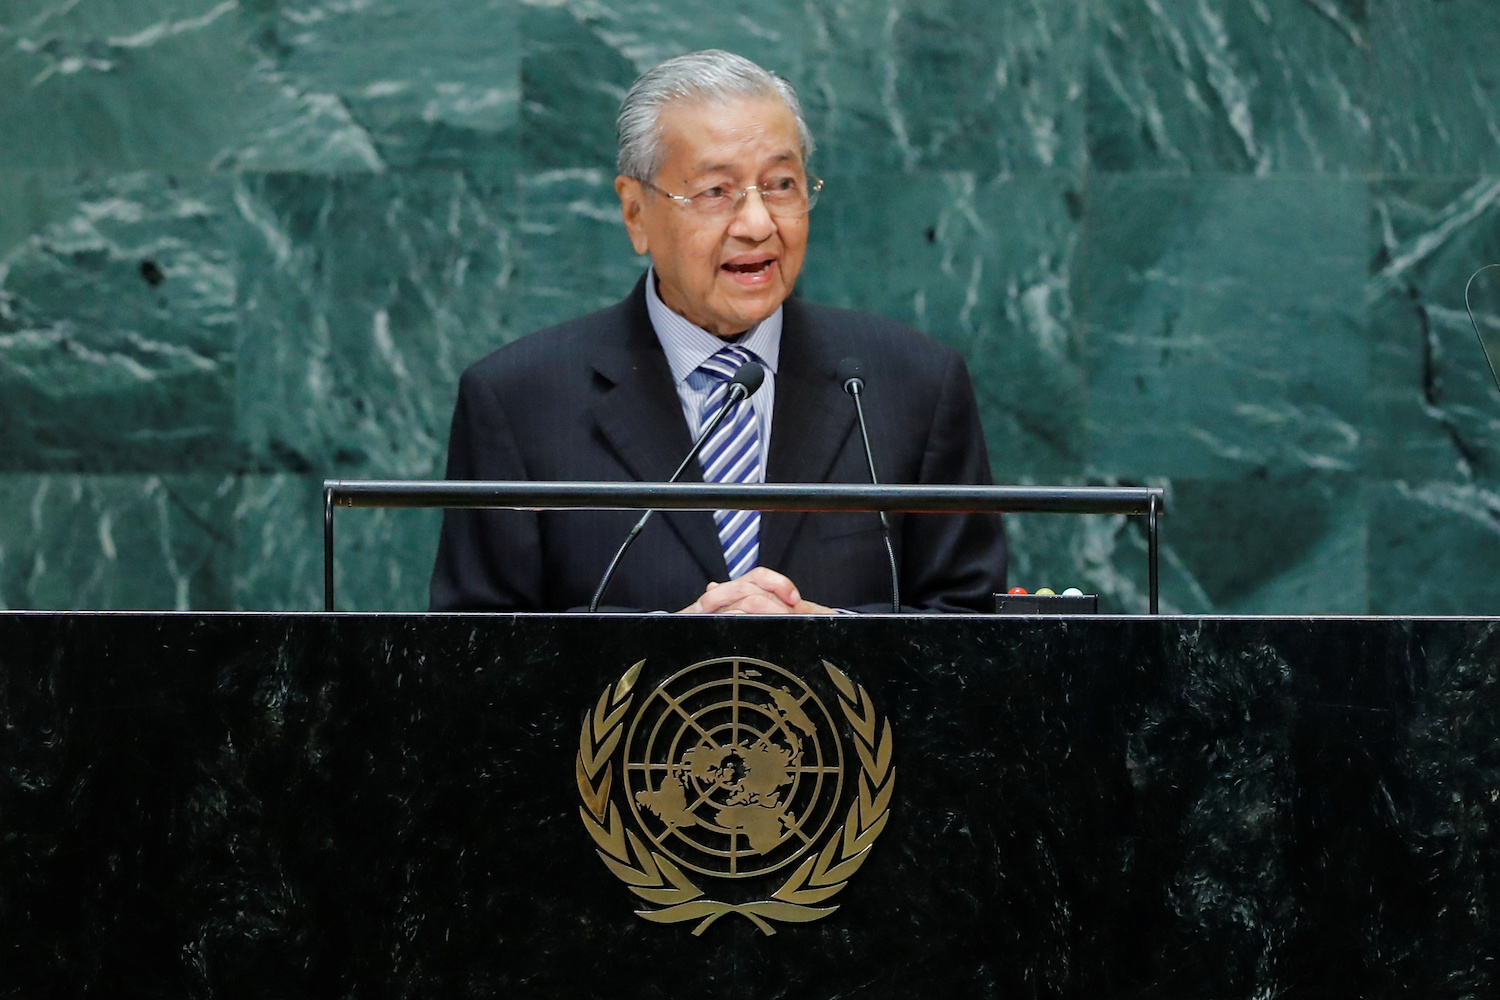 Malaysian Prime Minister Mahathir Mohamad addresses the UN General Assembly in New York on Friday. (Reuters Photo)